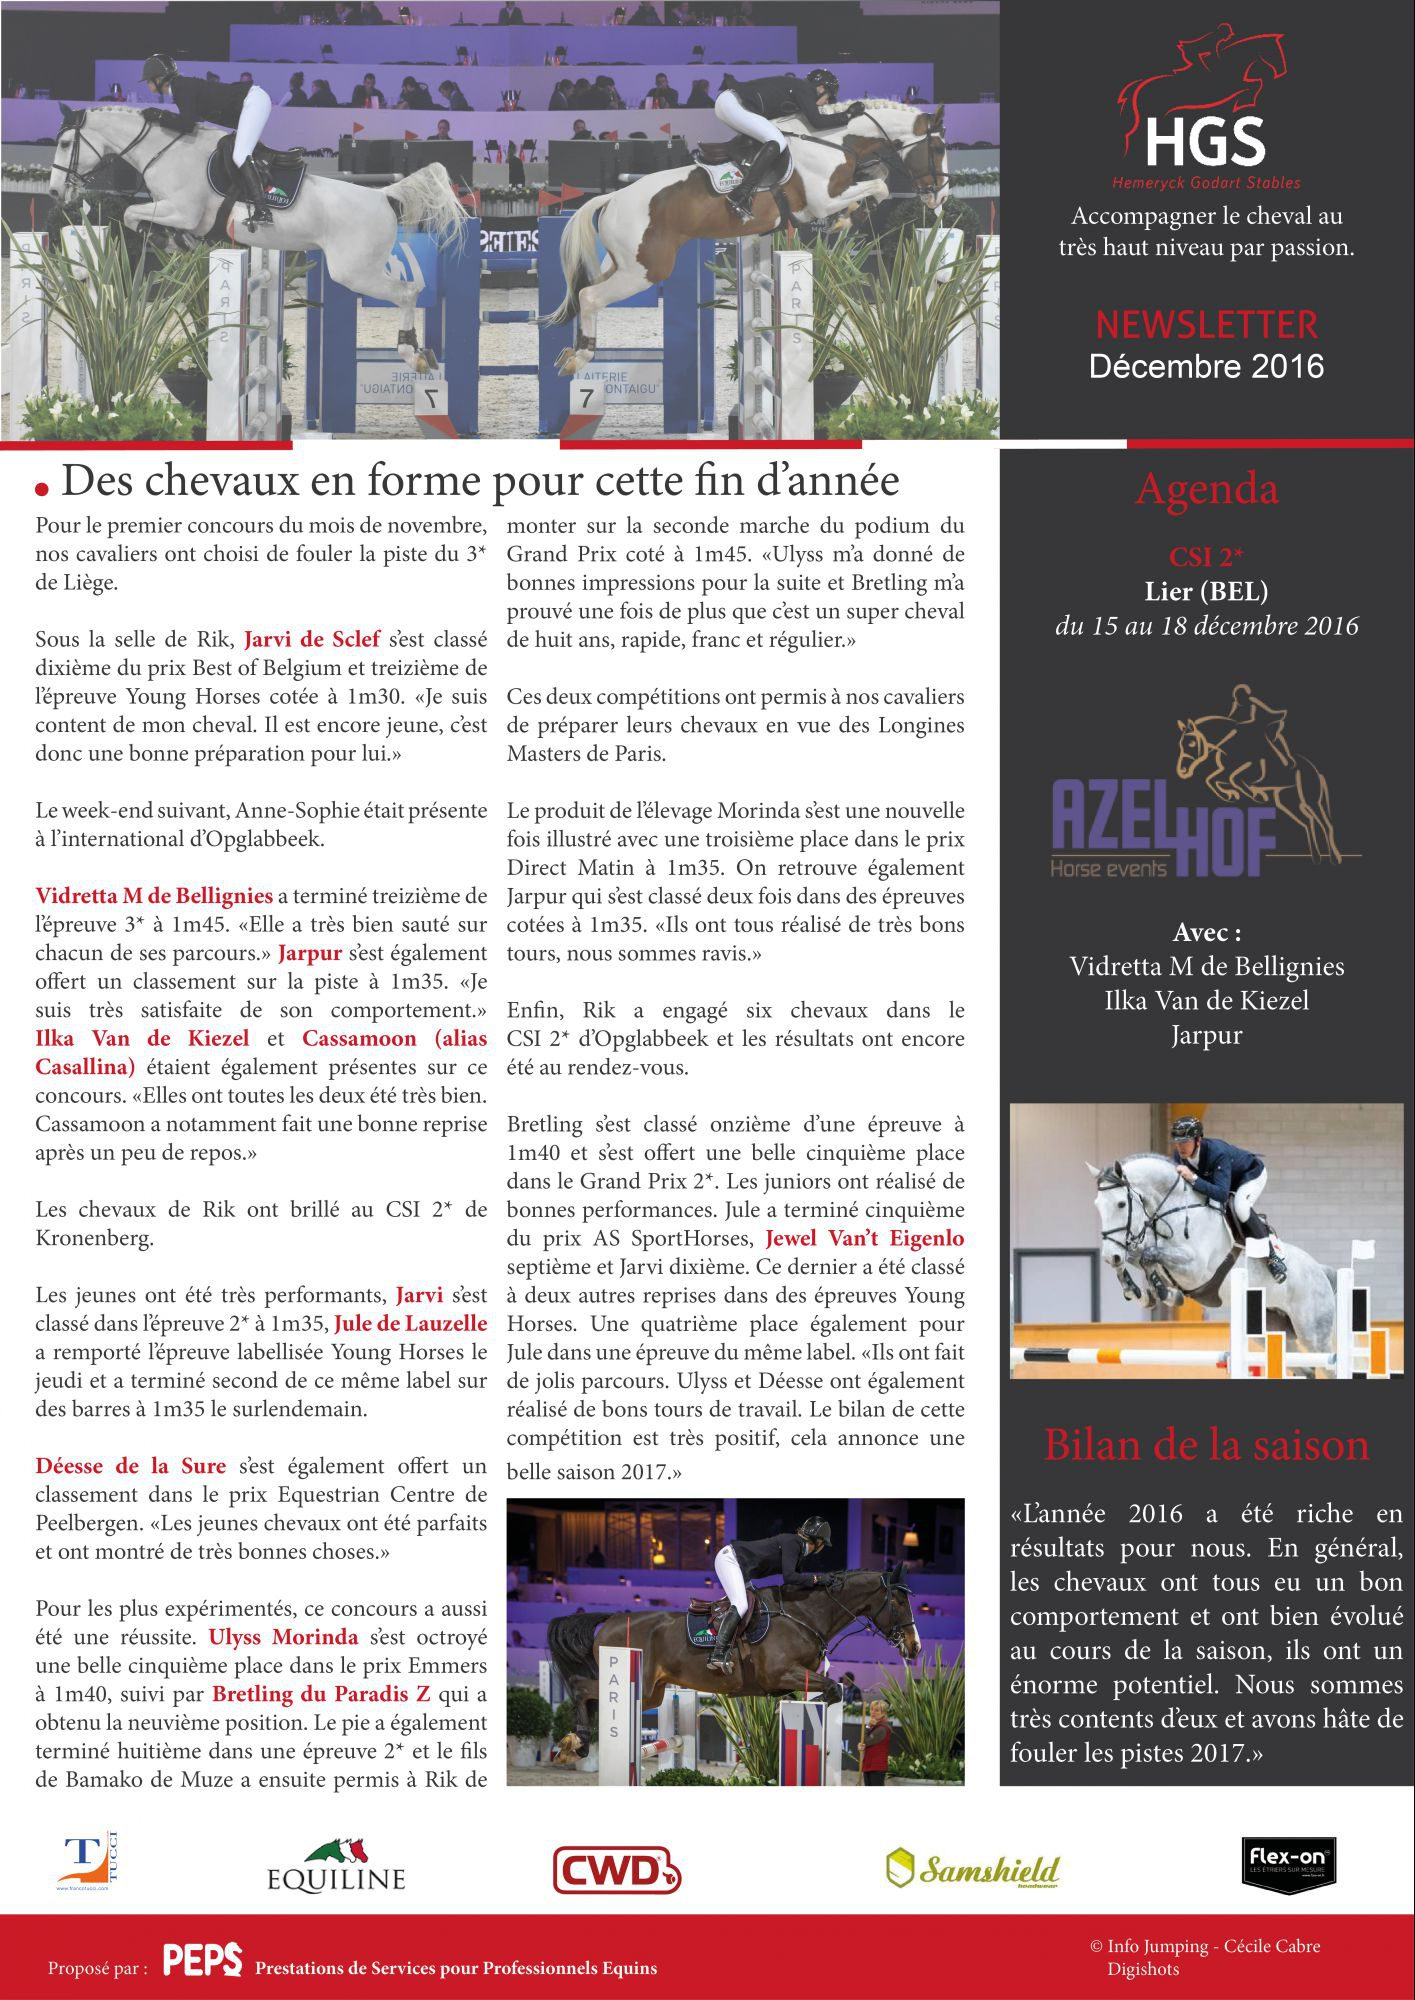 hgs-nl-decembre-2016-haute-resolution